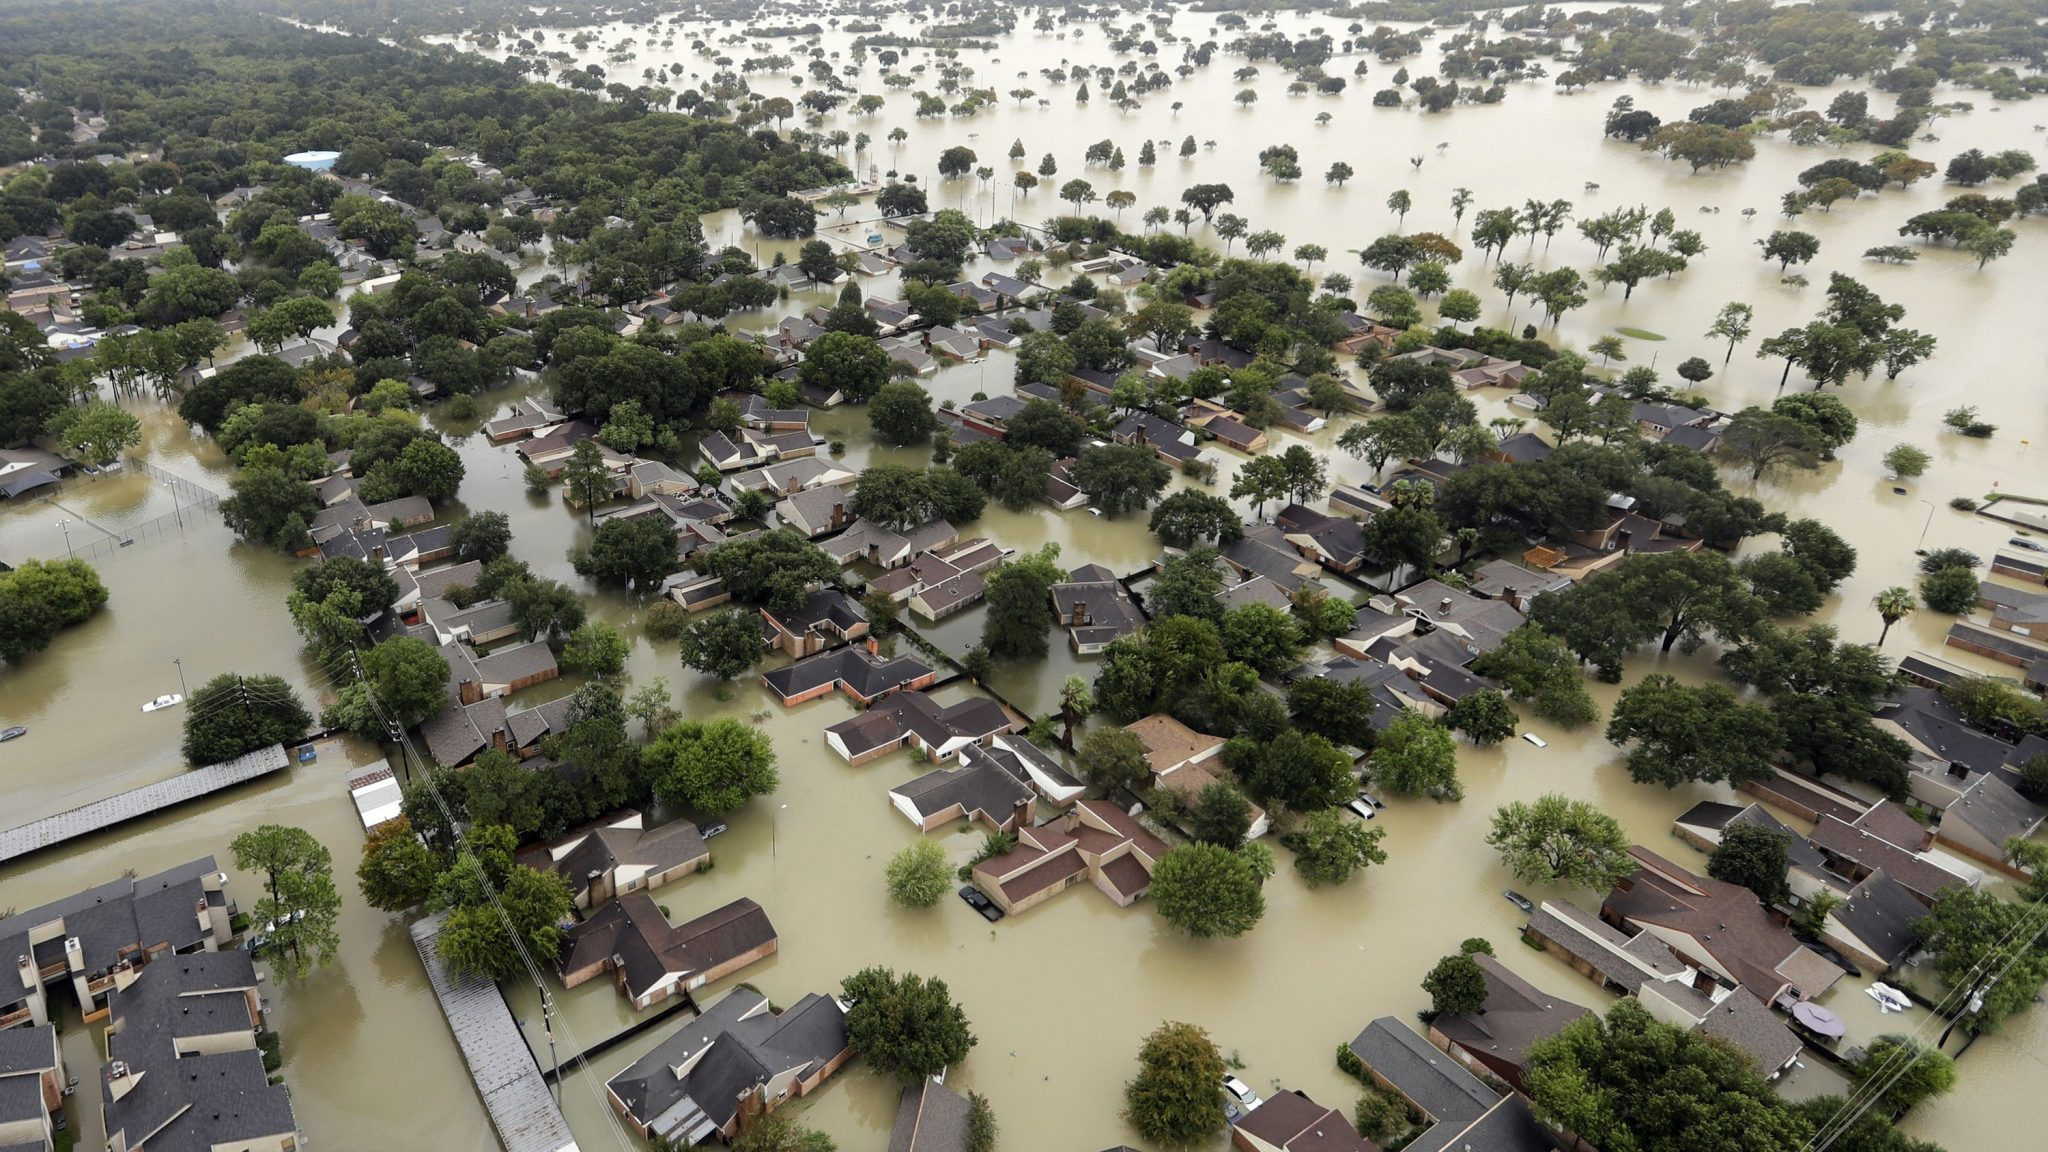 Flooded area of Houston after Hurricane Harvey, 2017 (AP Photo/David J. Phillip)